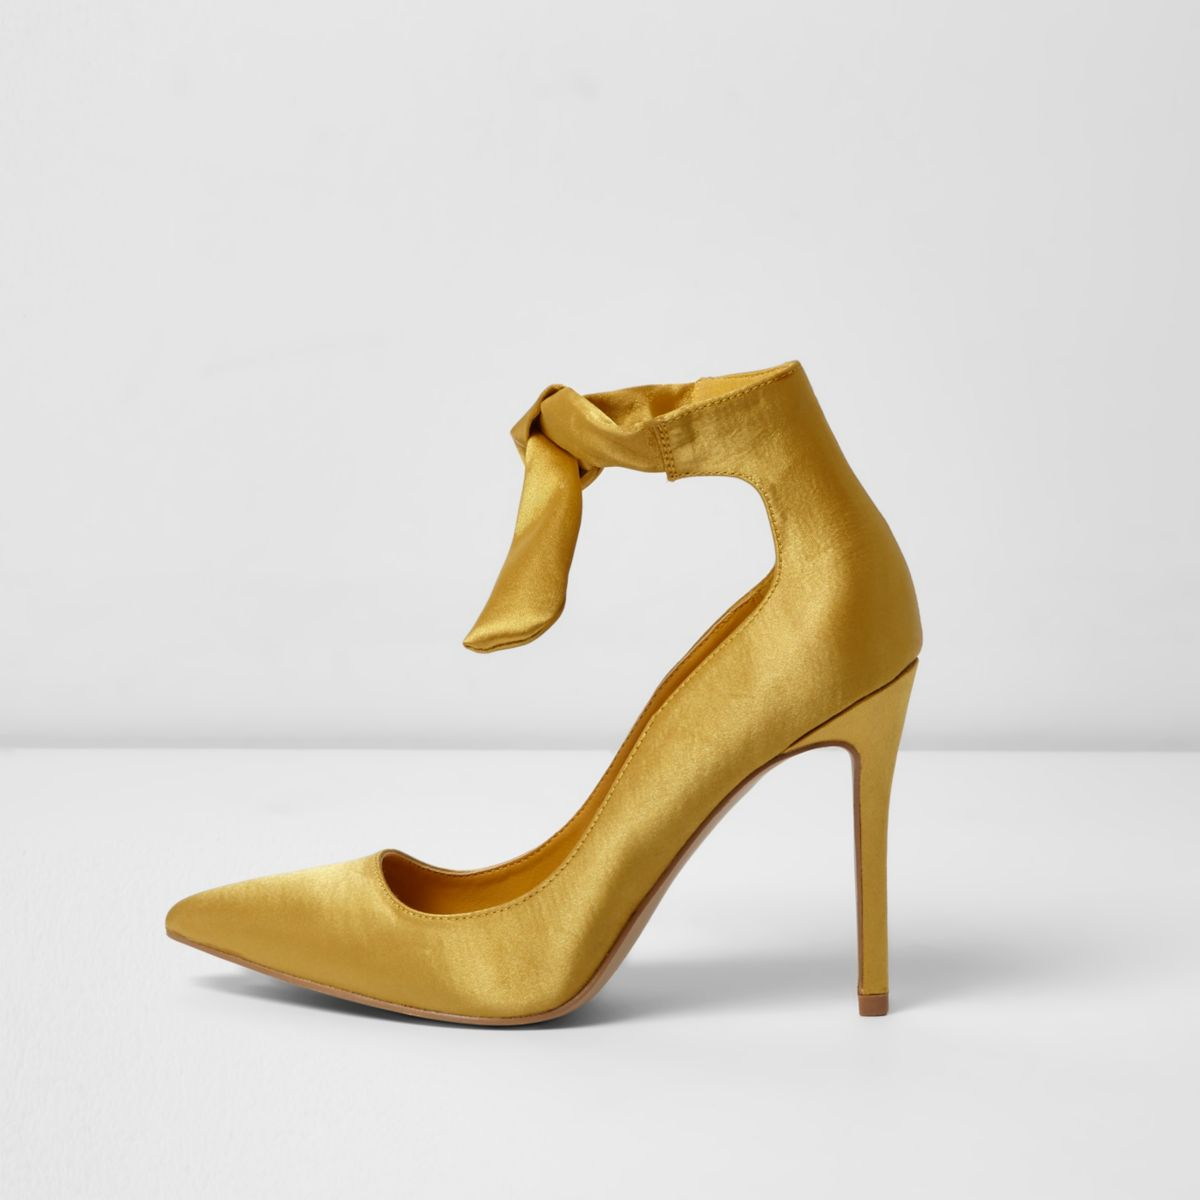 Yellow satin ankle tie up court shoes